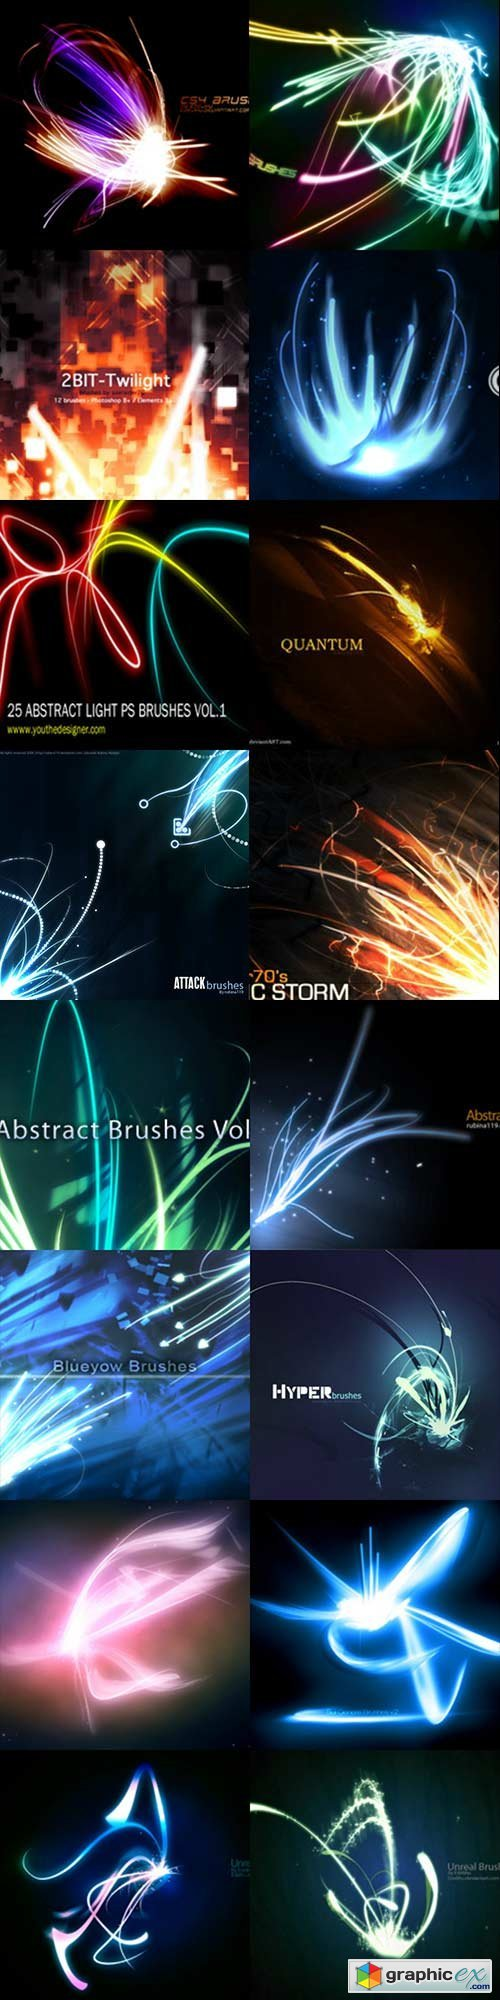 Abstract lines brushes - 2